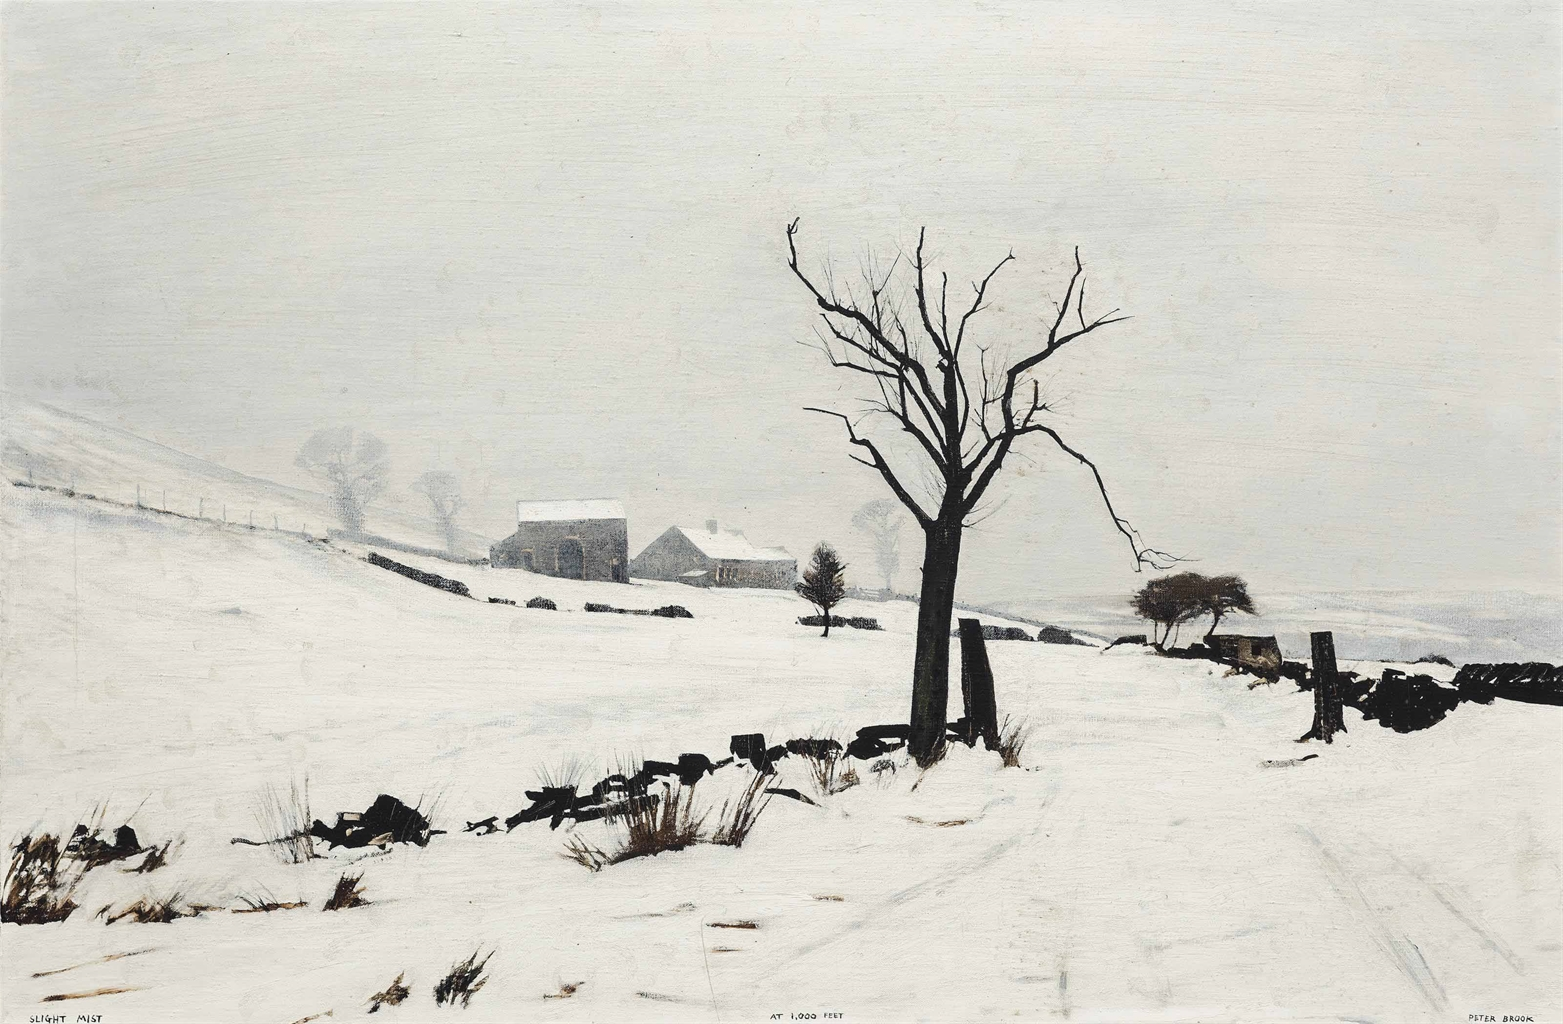 Peter Brook-Slight Mist at 1,000 feet-